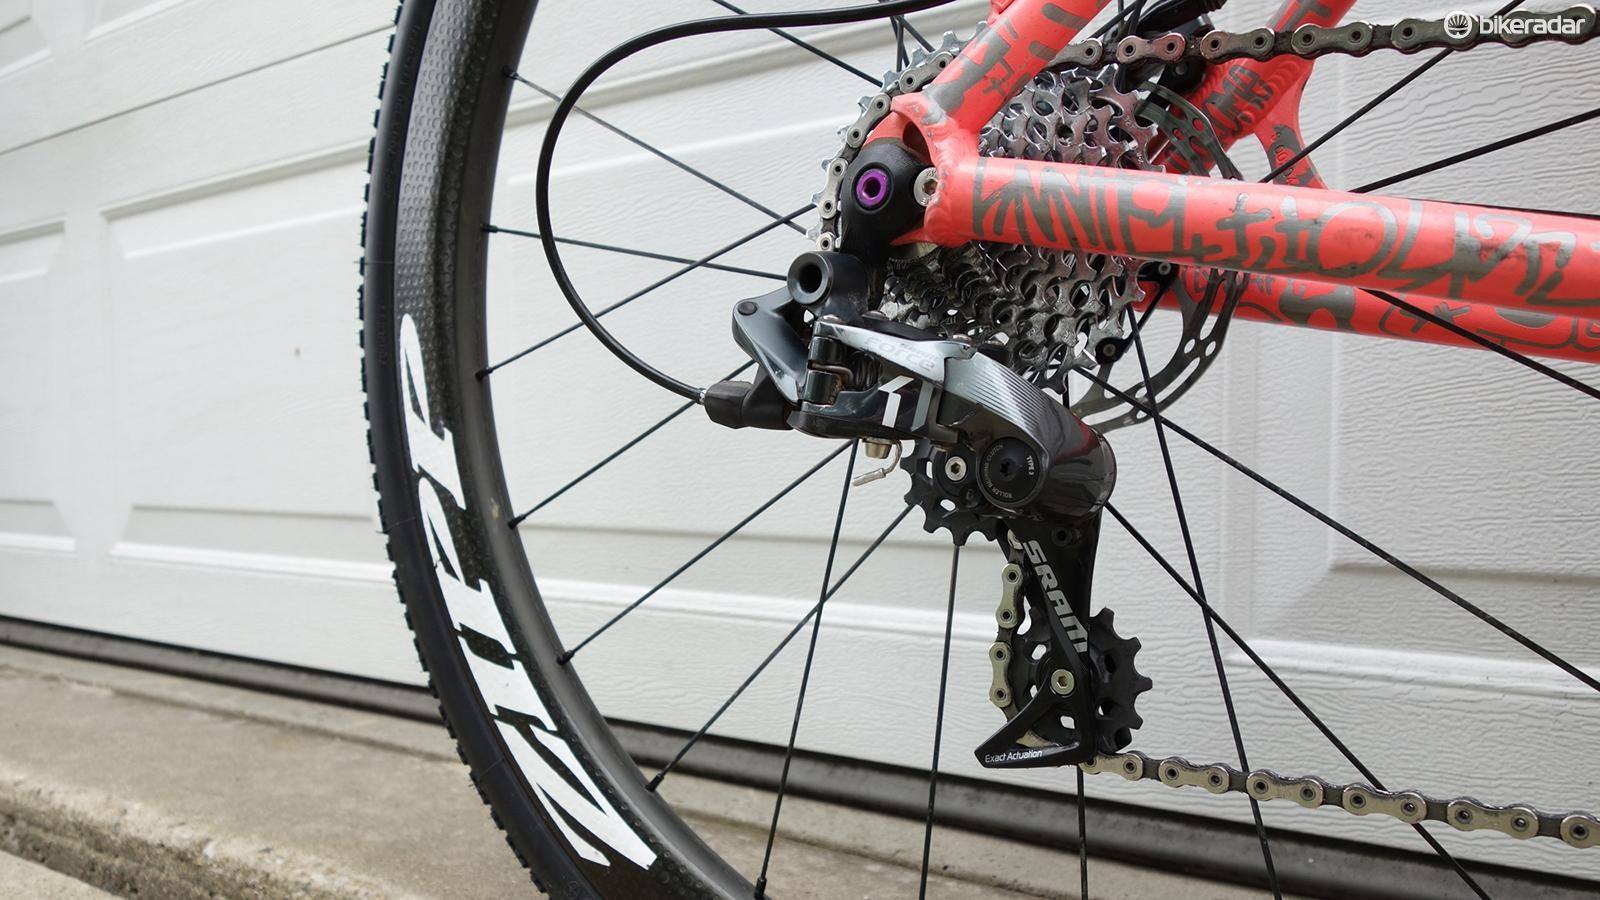 The bike is equipped with a mechanical SRAM Force rear derailleur